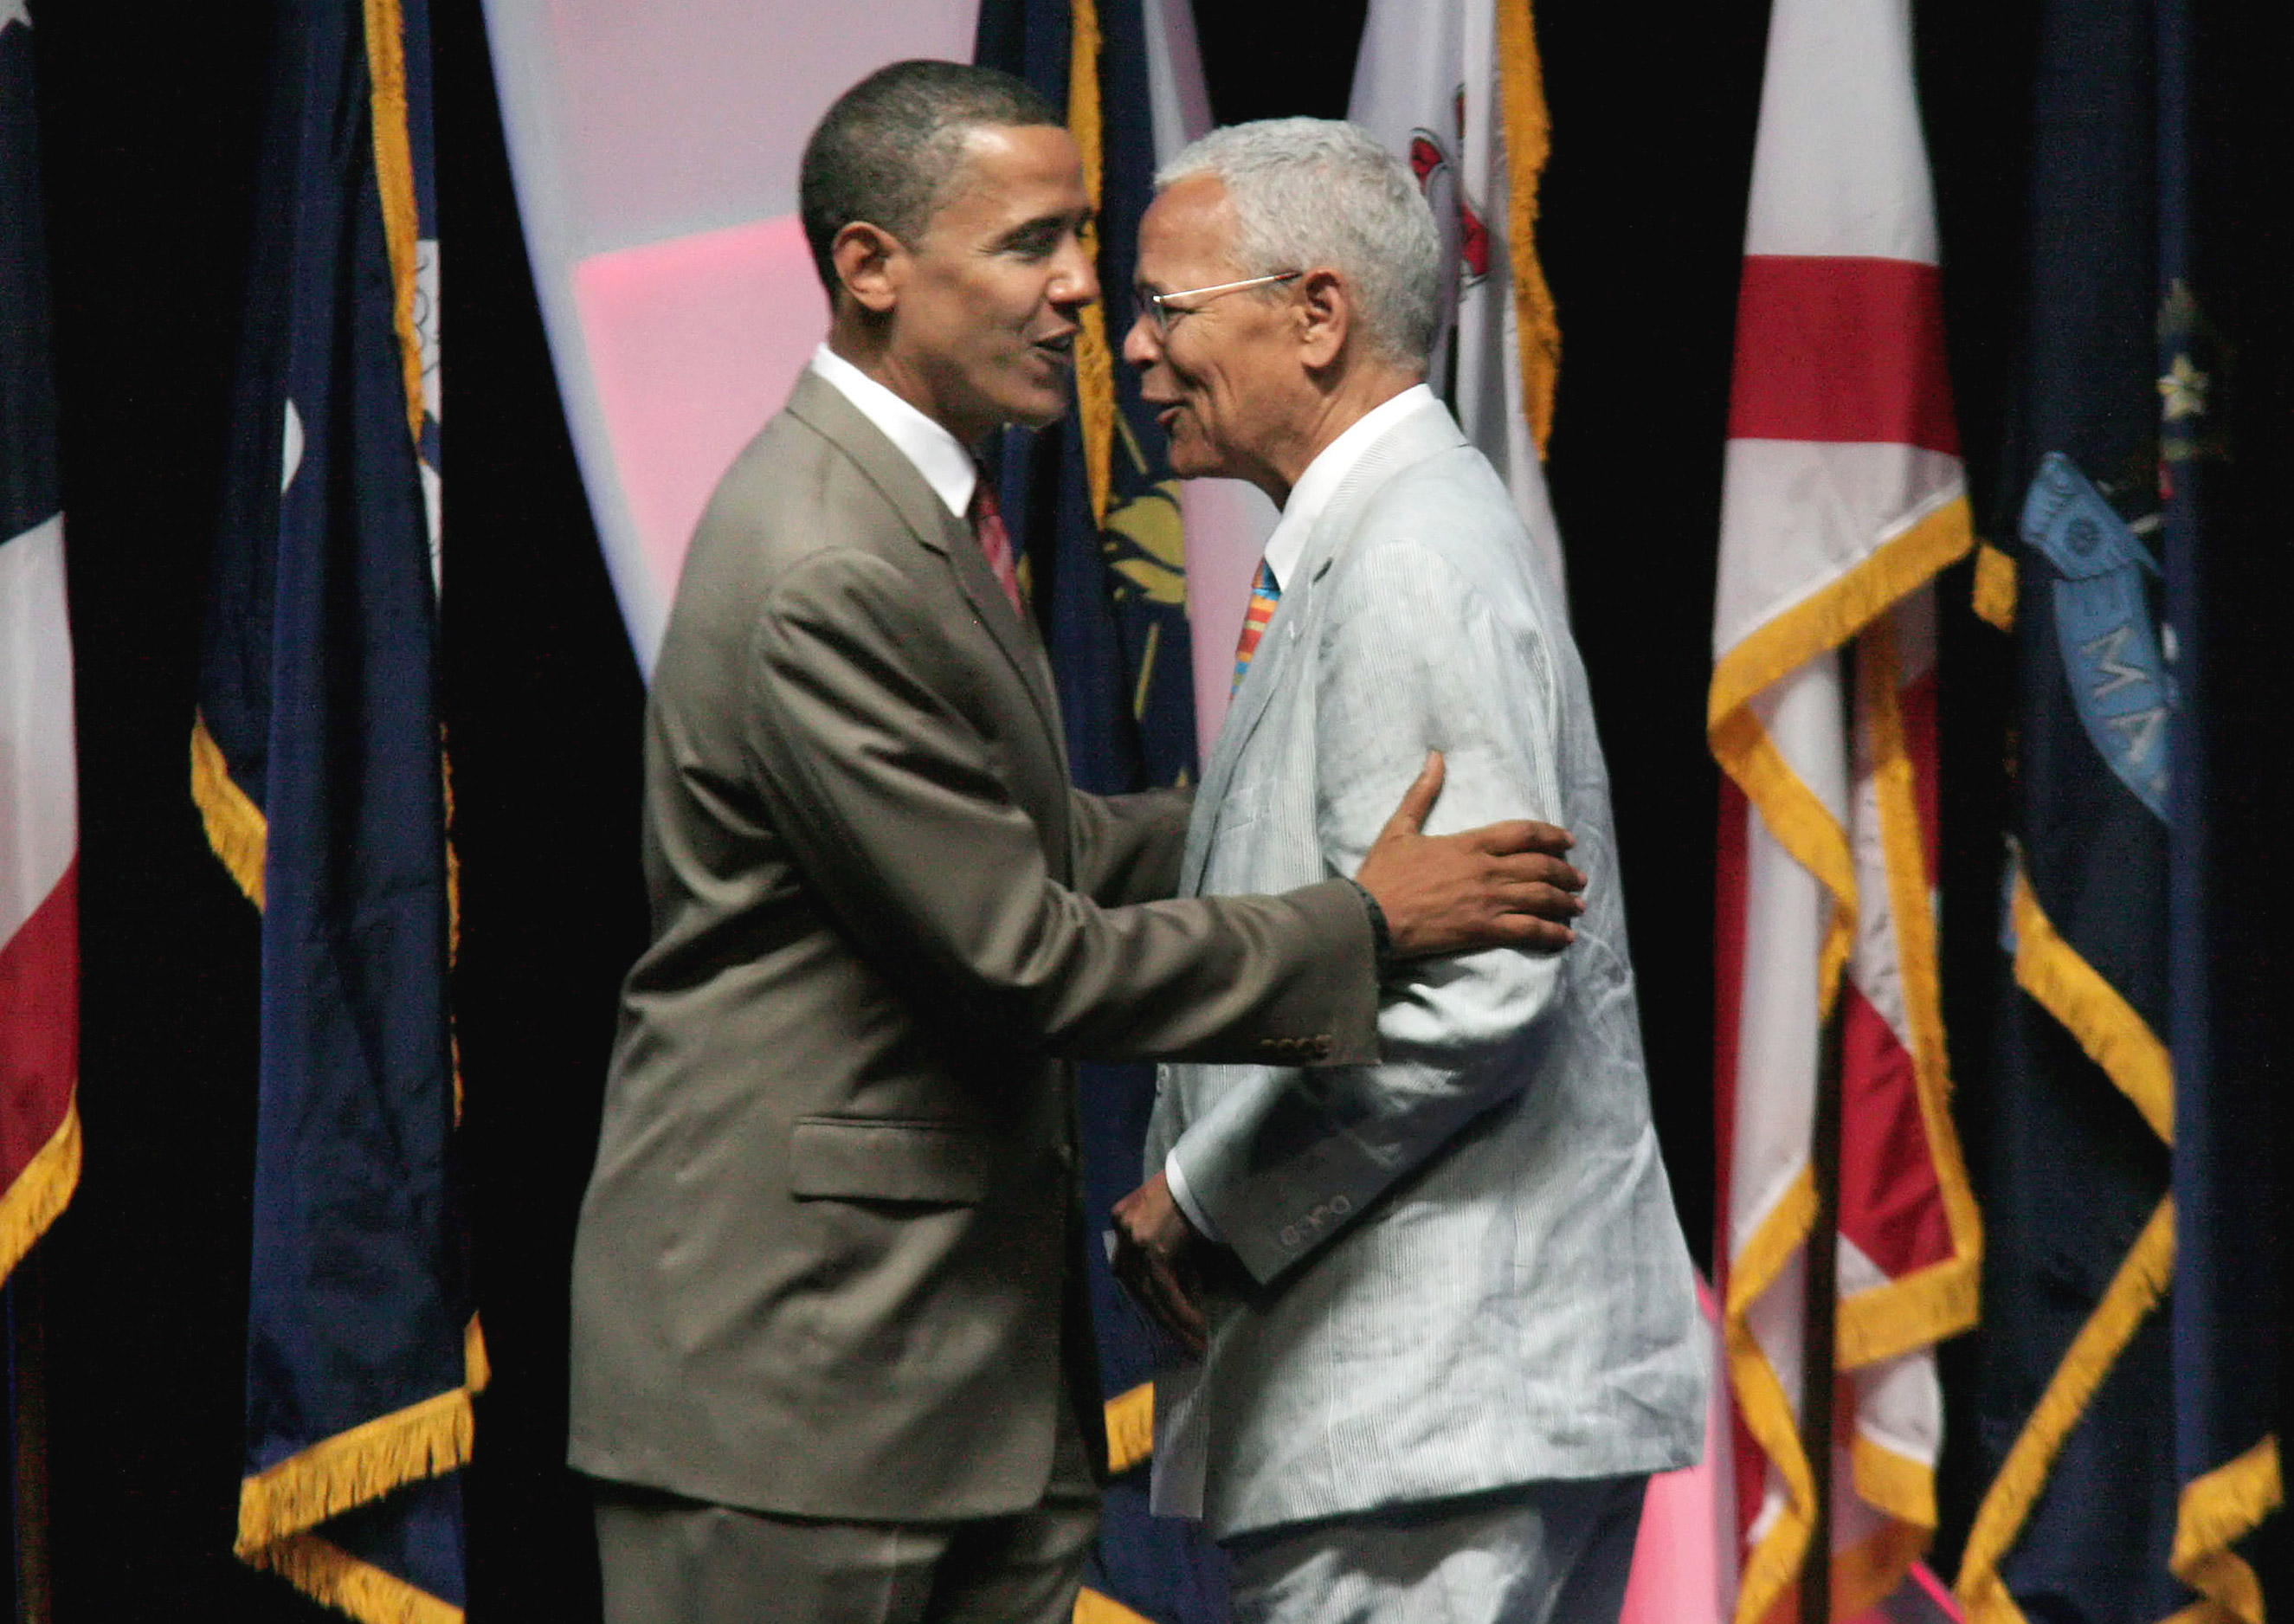 Democratic presidential candidate Senator Barack Obama shakes hands with NAACP Chairman Julian Bond before he speaks to supporters at the NAACP convention in Cincinnati on July 14, 2008.